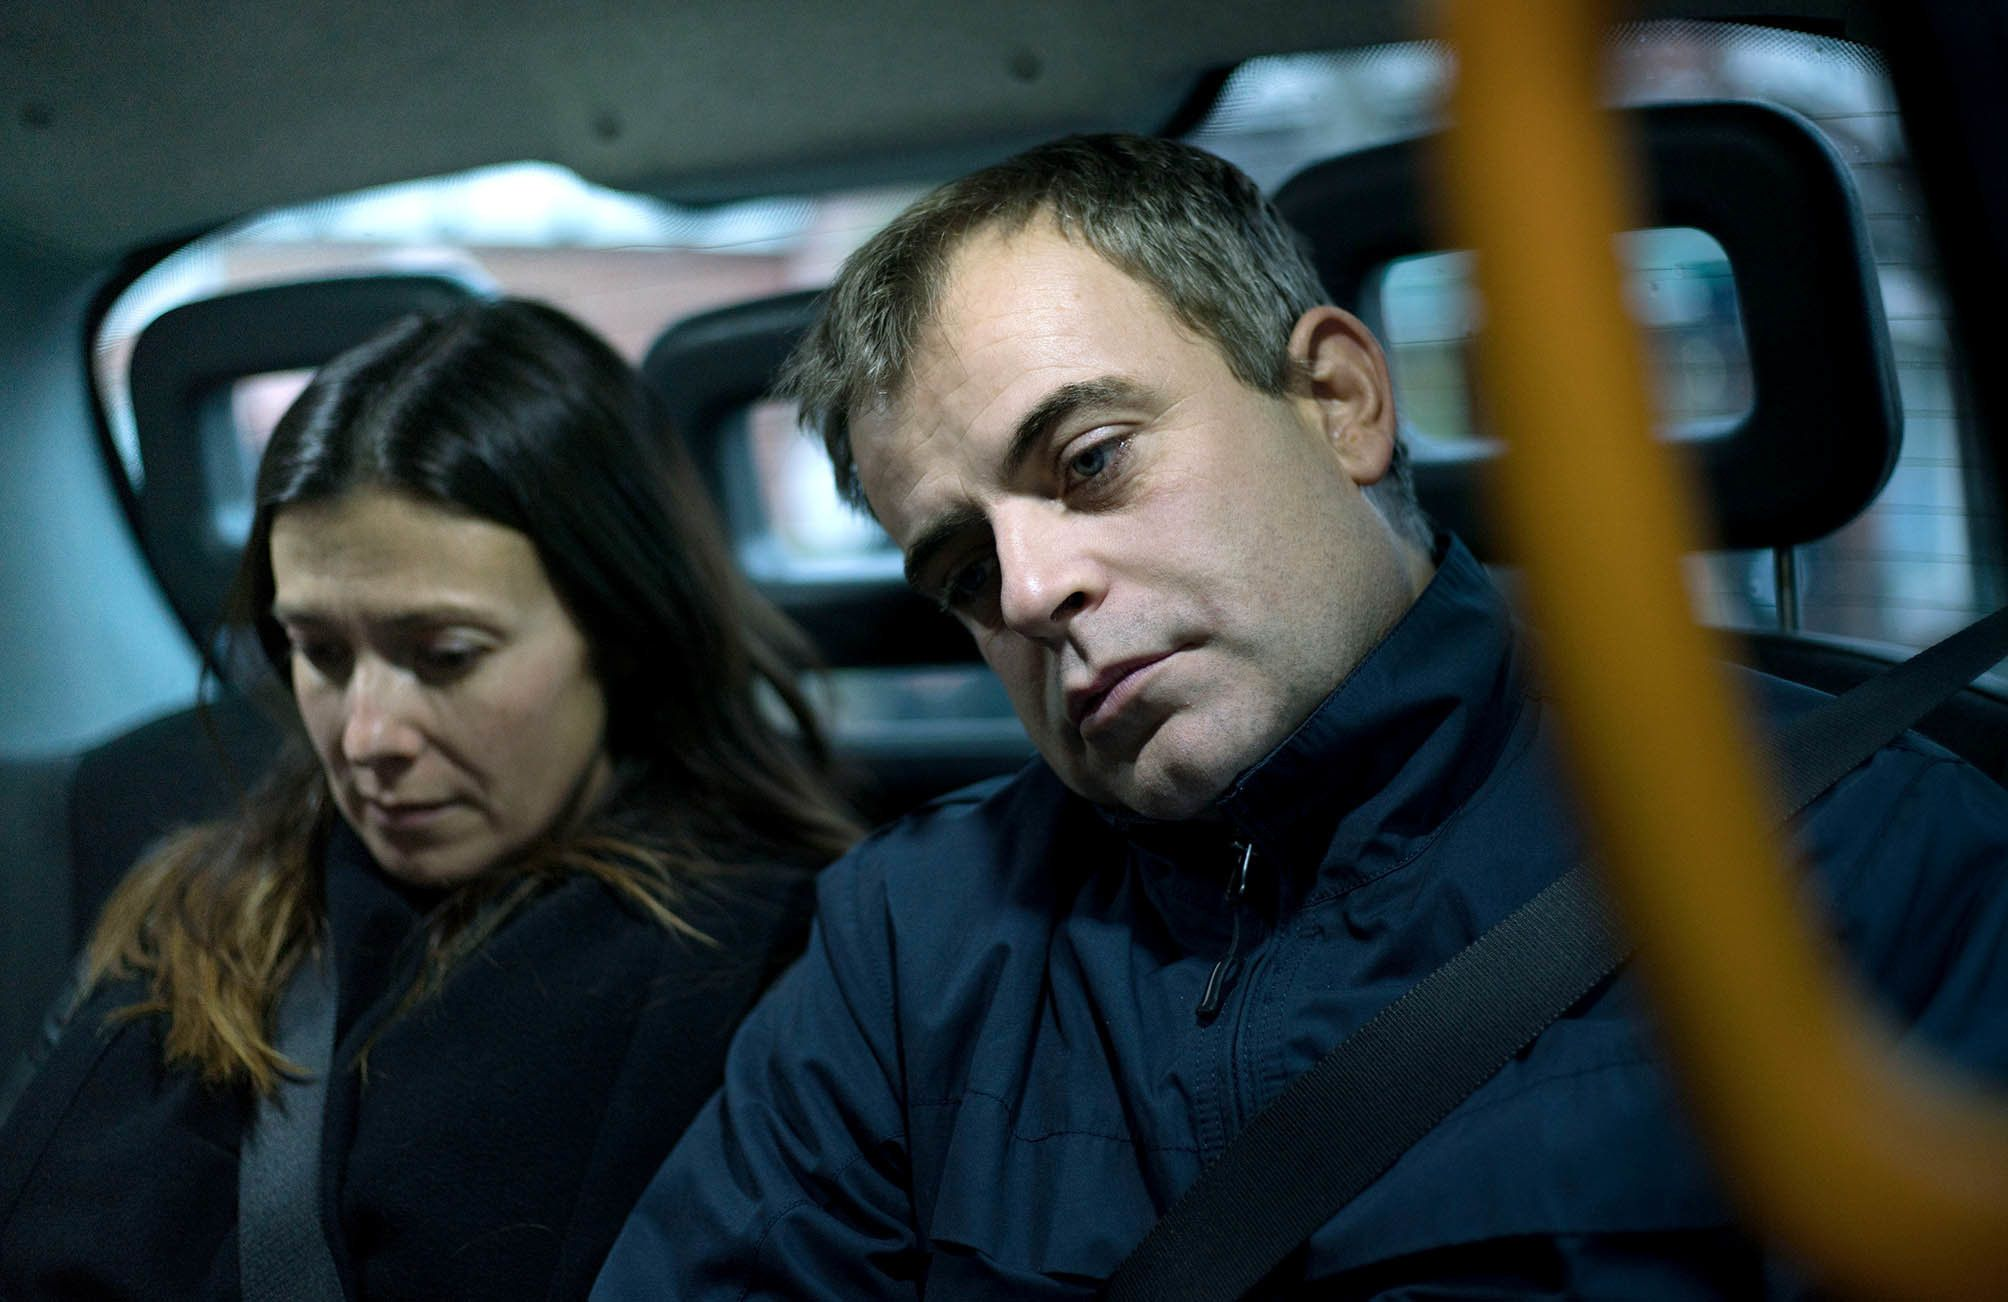 Corrie's Kym Marsh And Simon Gregson Reveal How Their Characters Will Cope After Stillbirth